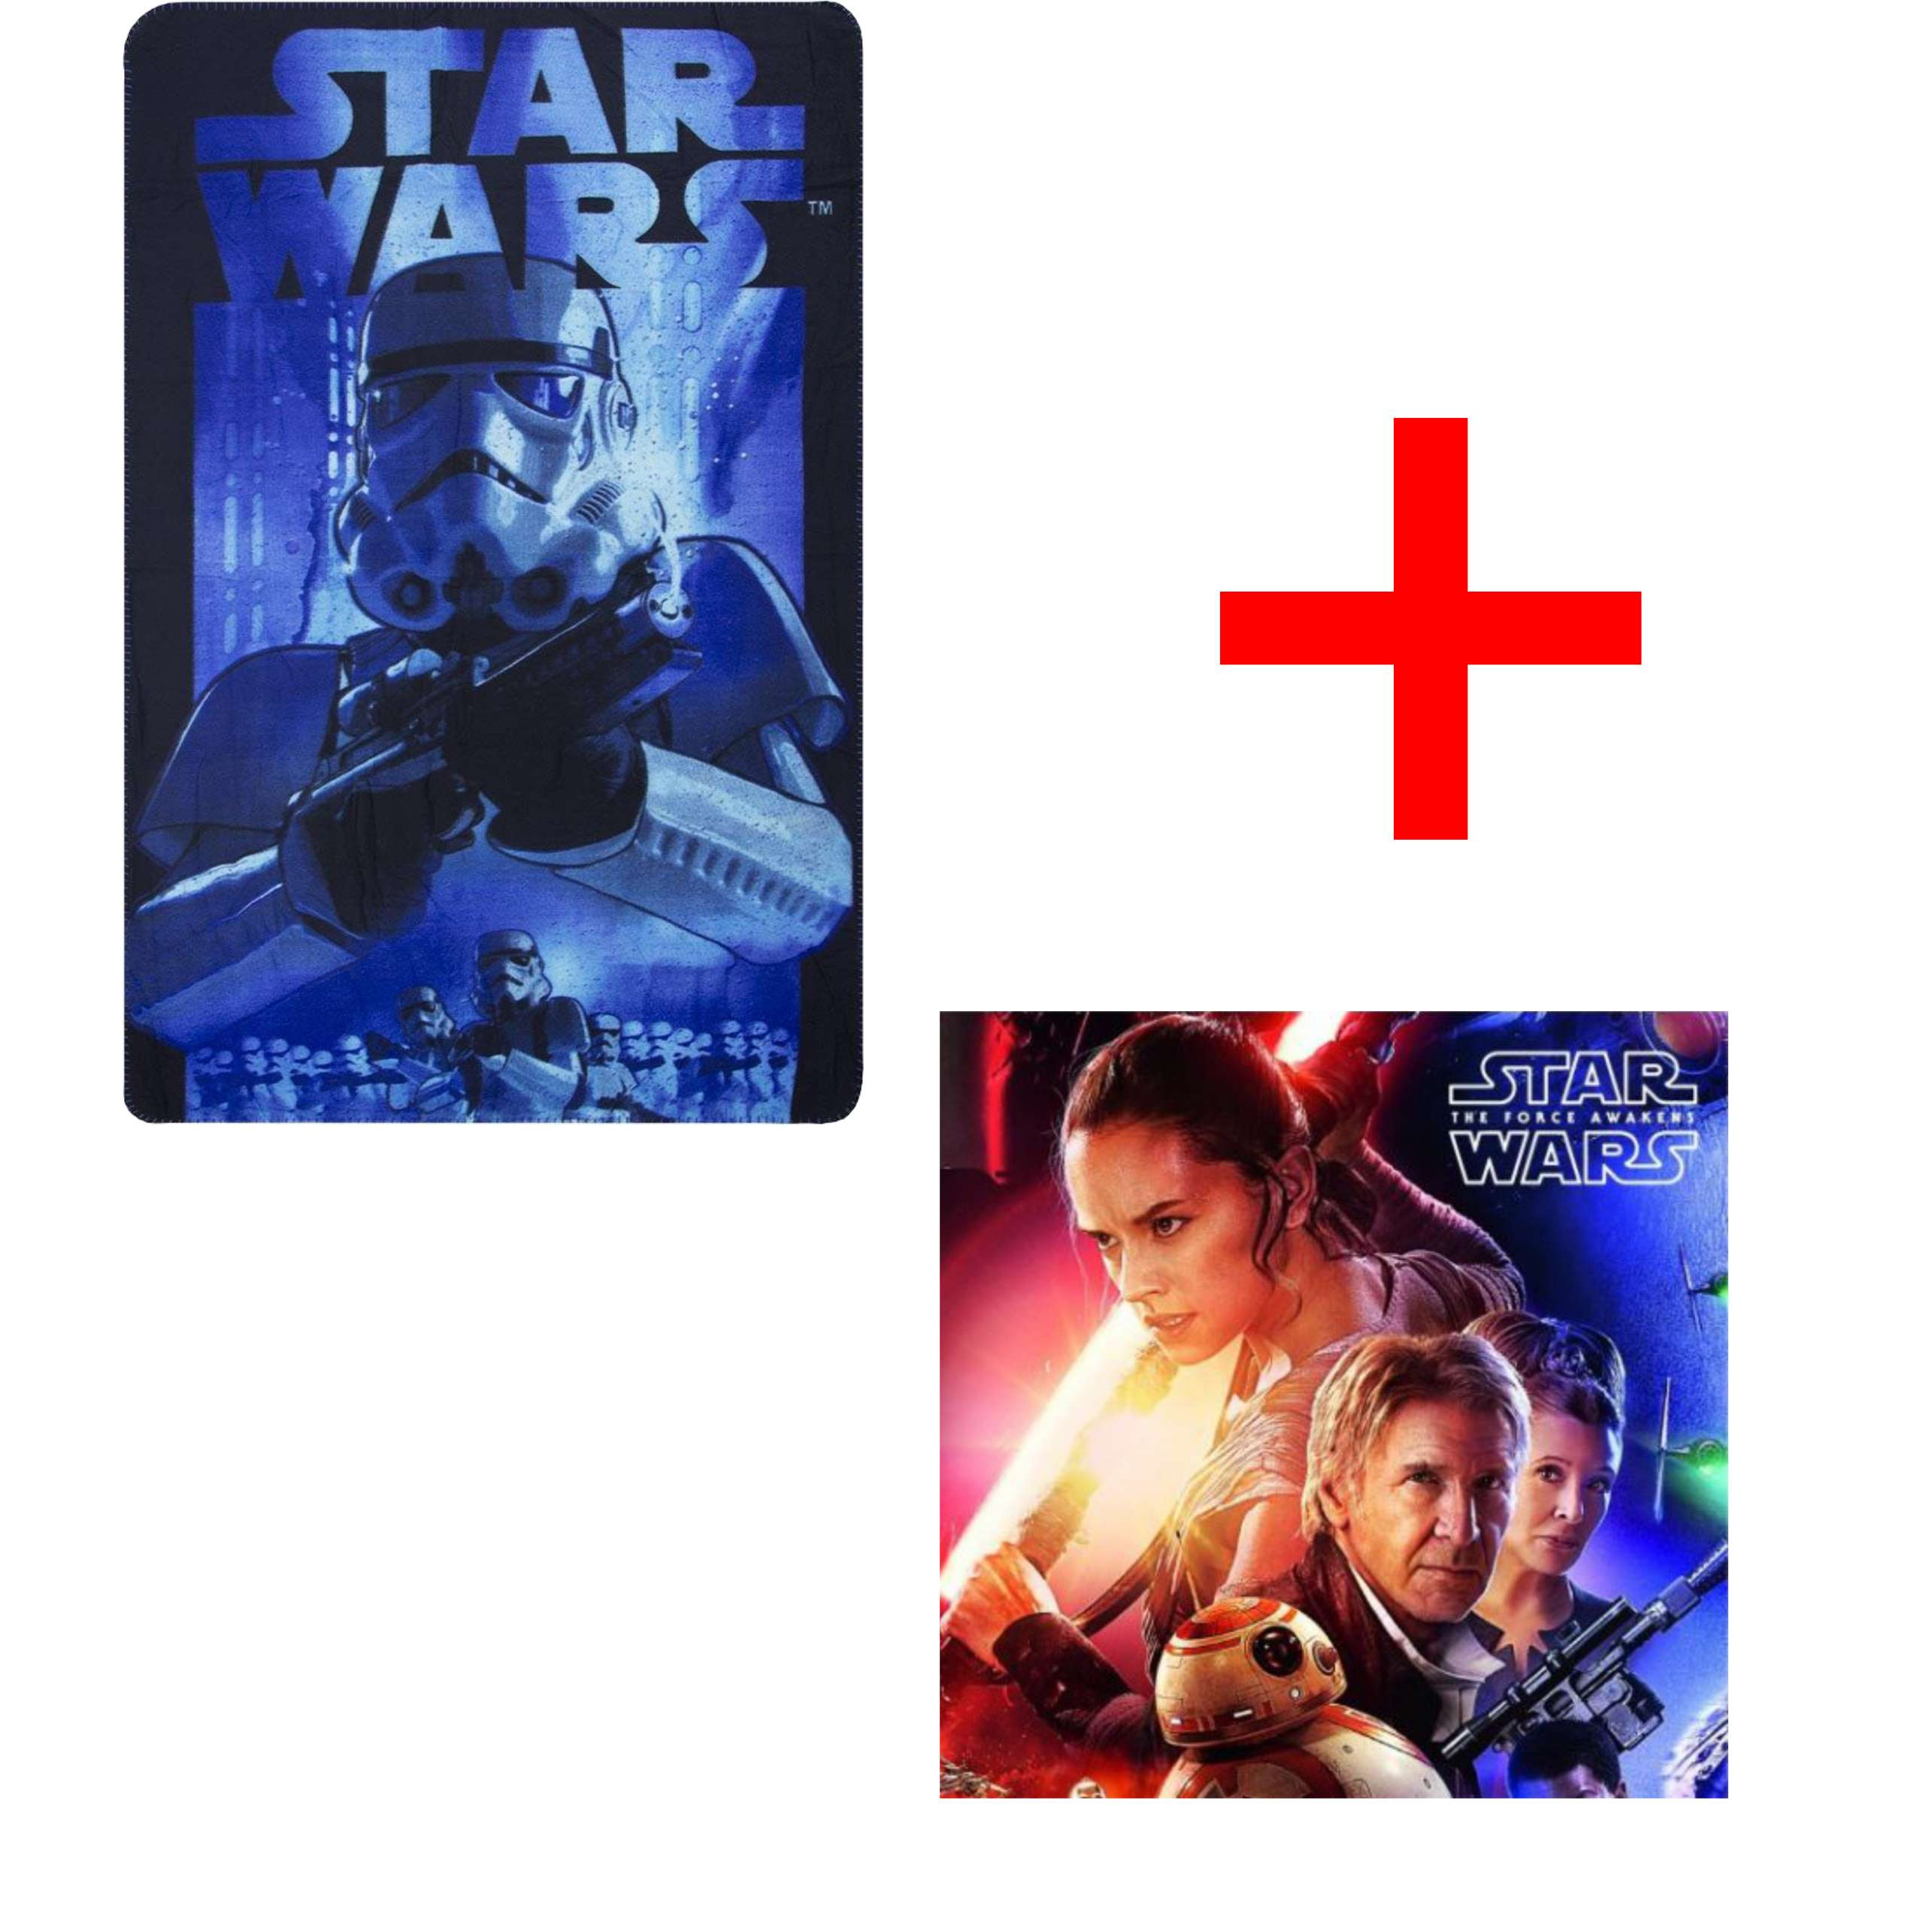 Disney Star Wars Blue Storm Trooper Fleece Blanket And The Force Awakens Reversible Pillow Case Set